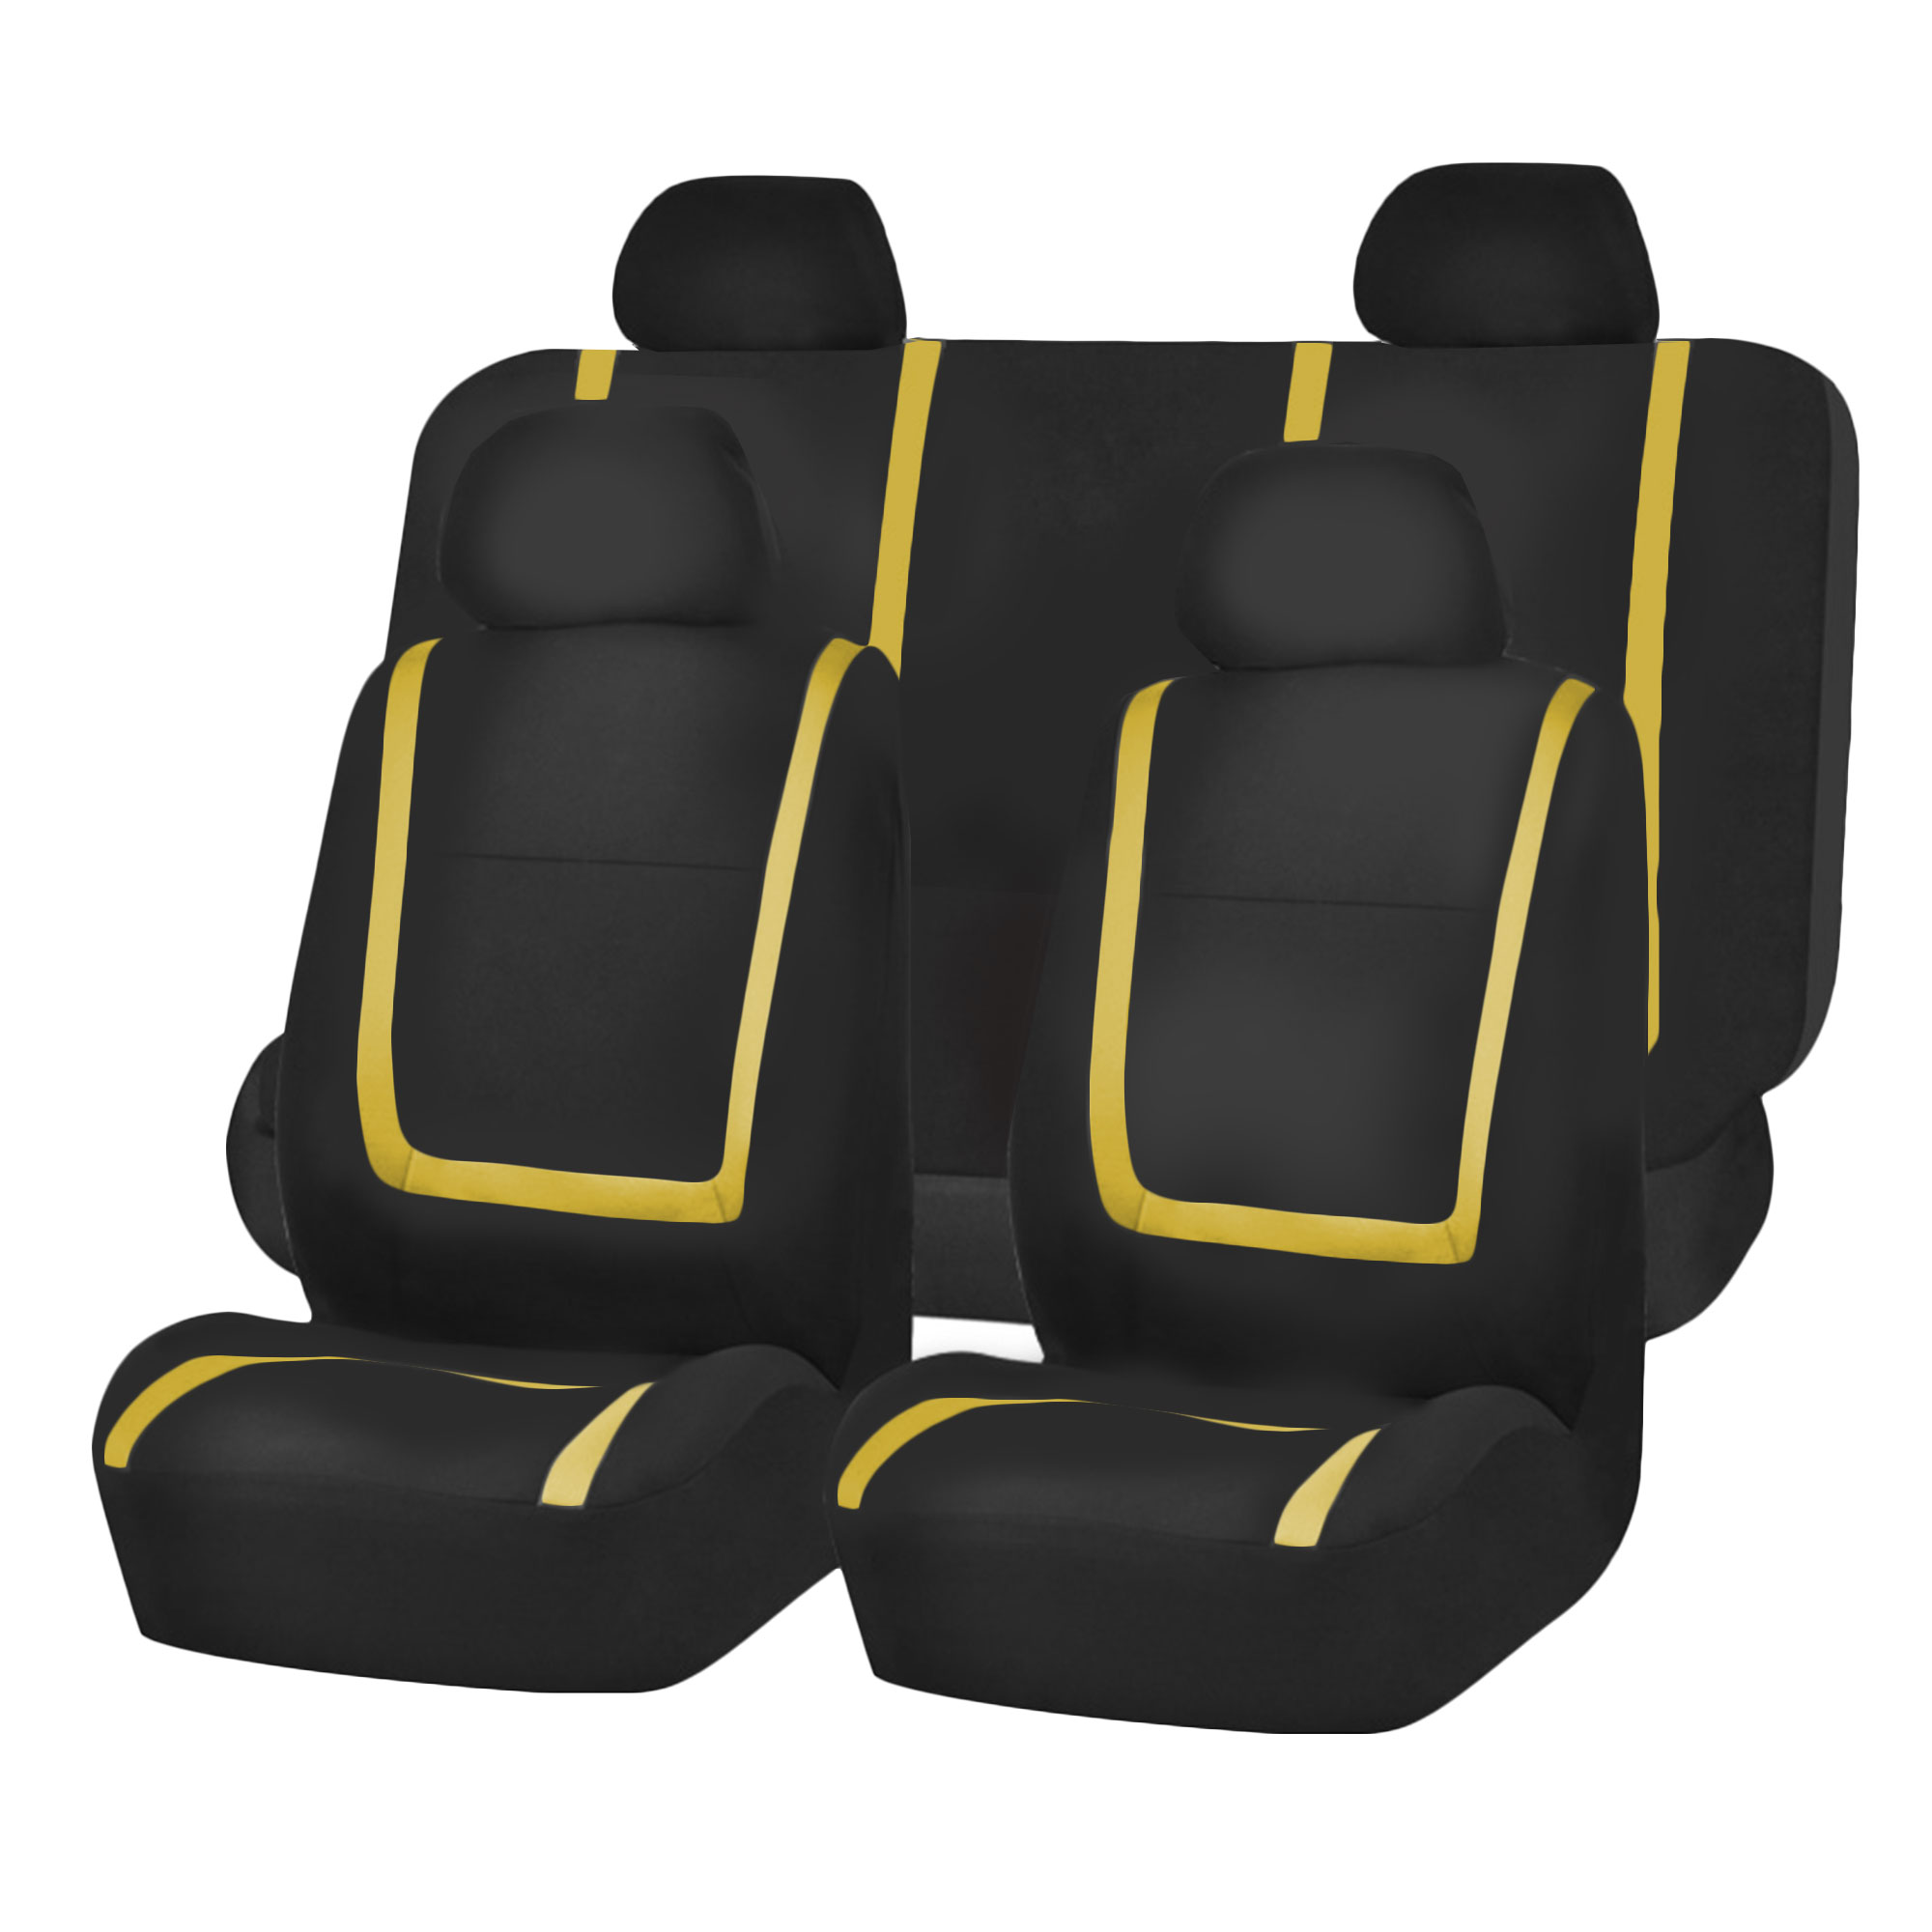 Black Amp Yellow Car Seat Covers With Black Carpet Floor